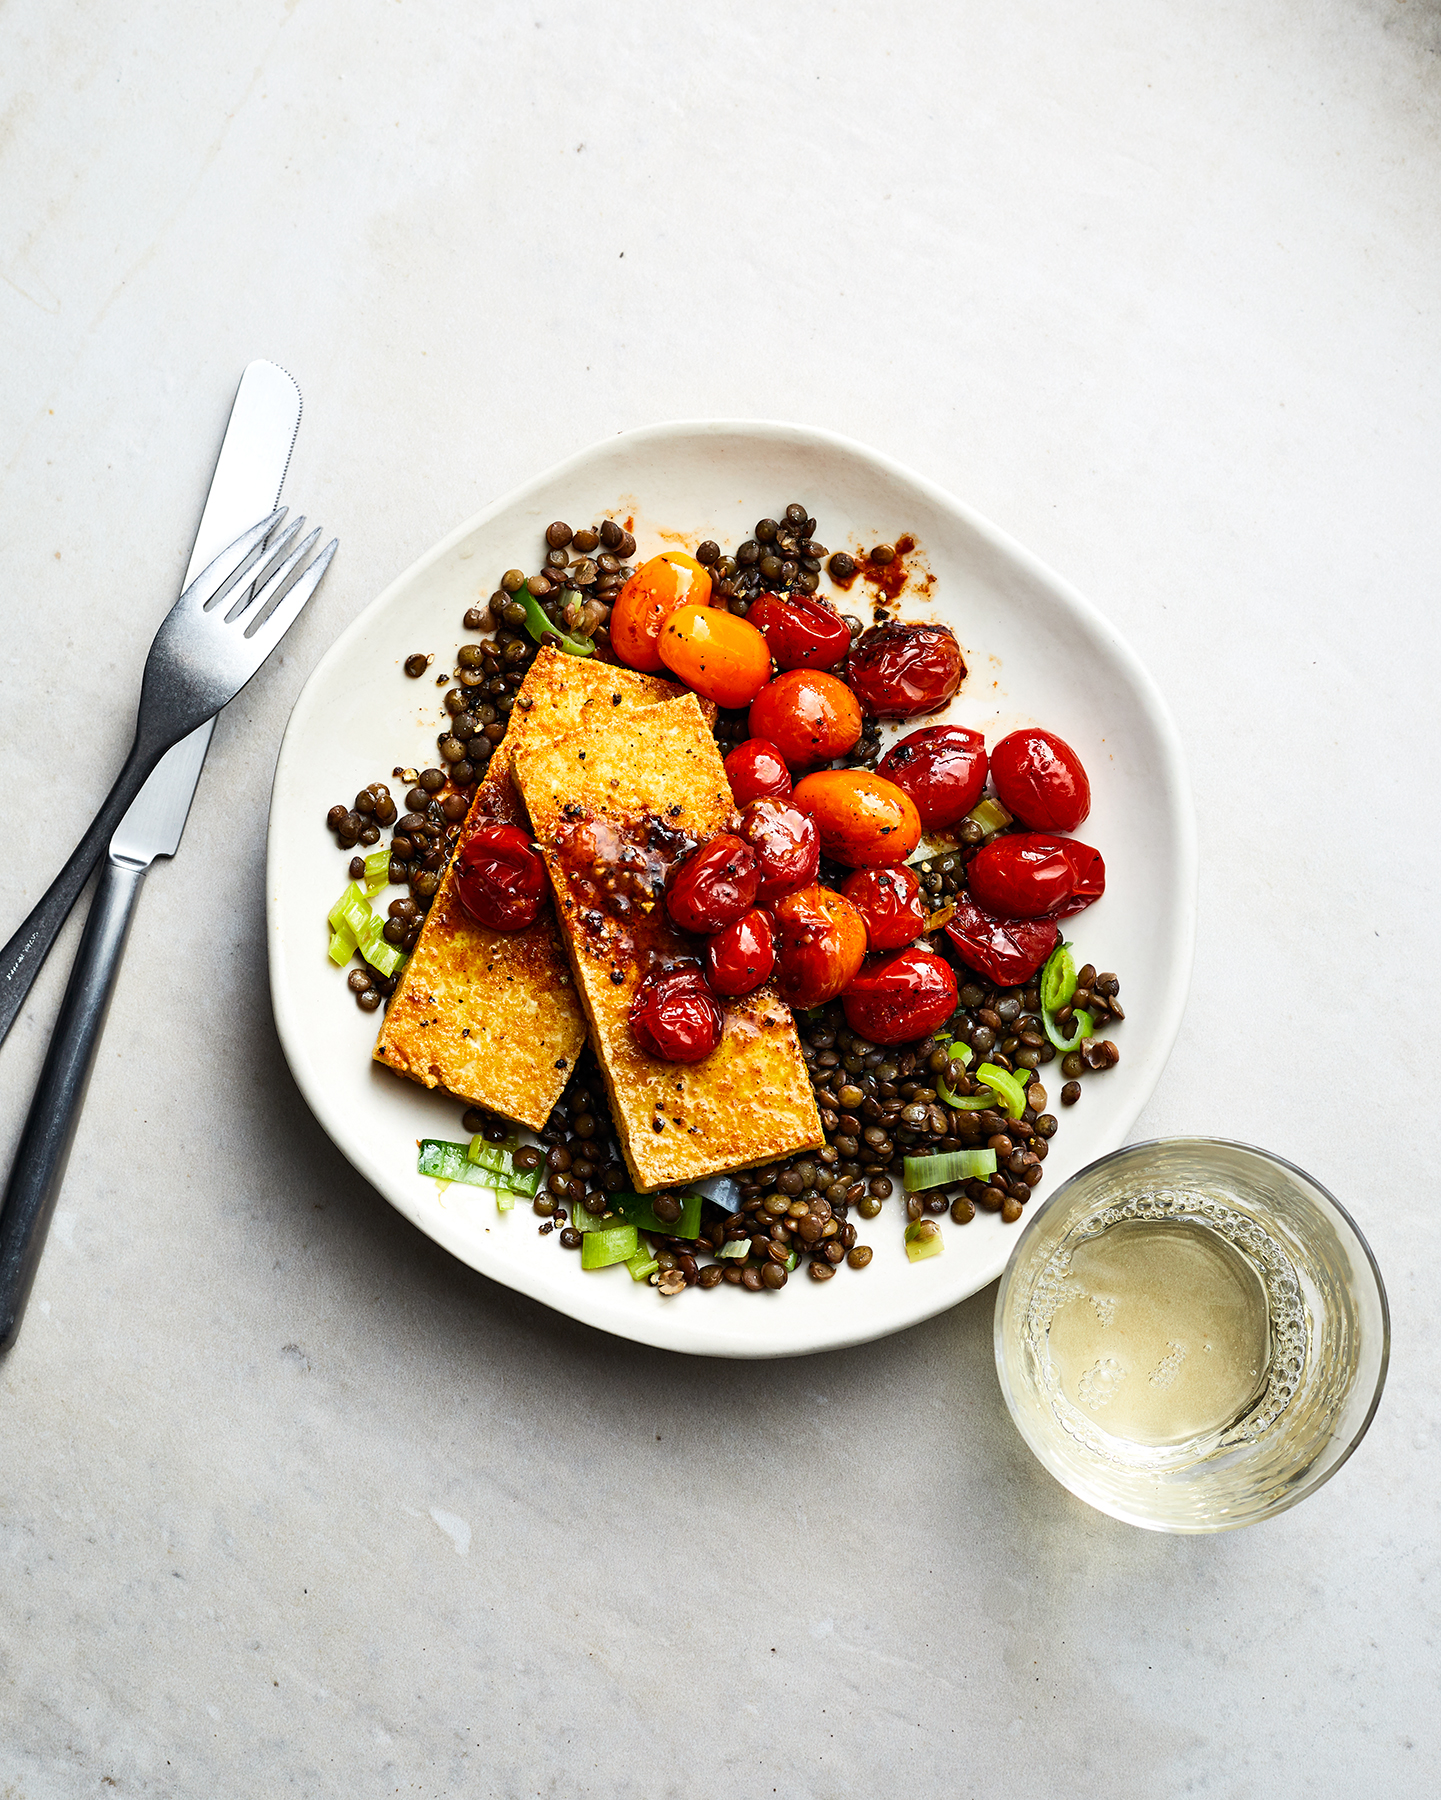 The Tofu I Make Is Insanely Good, Thanks to This Secret Ingredient